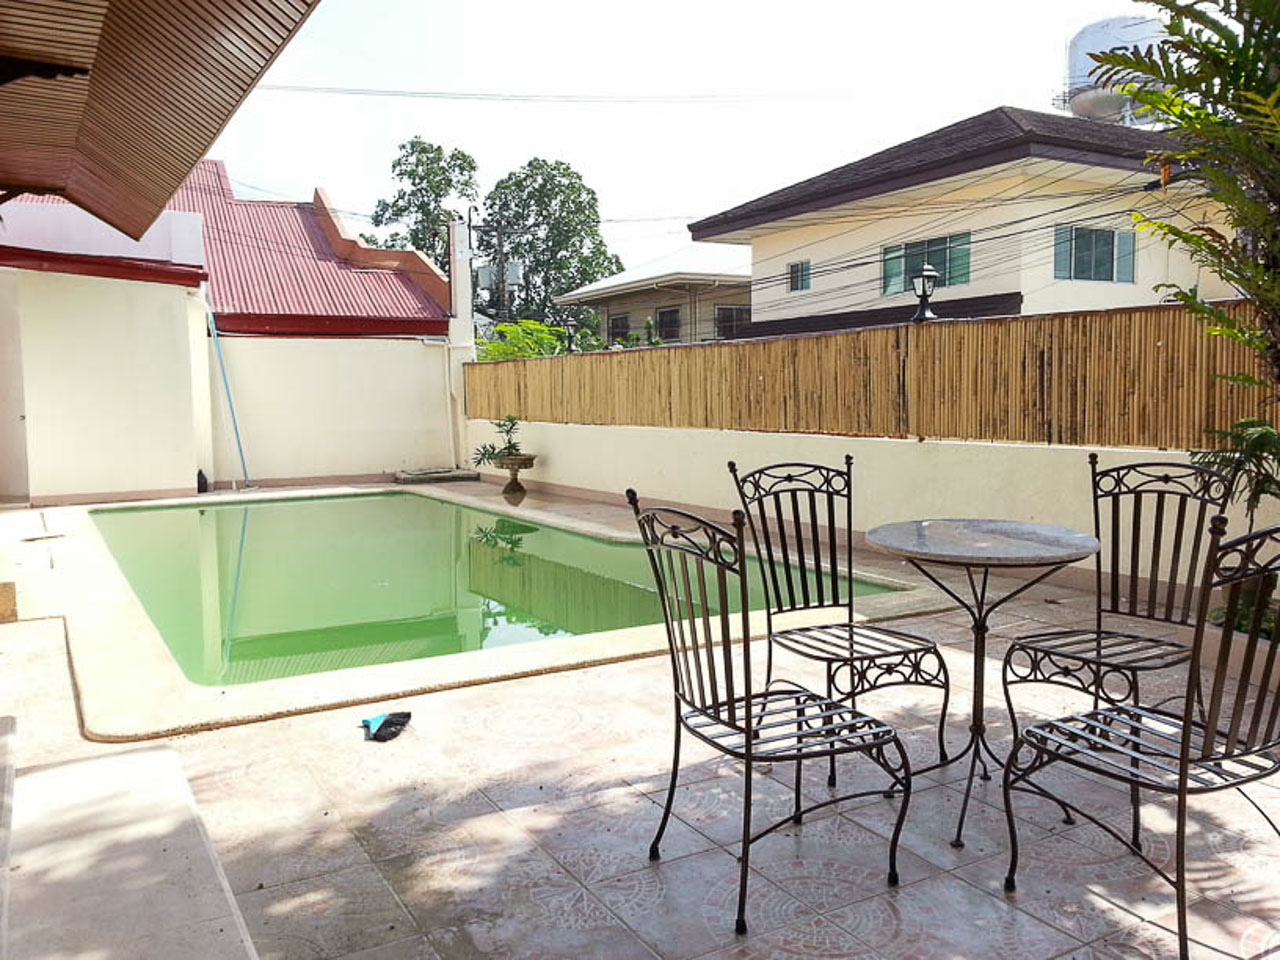 House for rent with swimming pool in cebu cebu grand realty for House with swimming pool for rent in quezon city